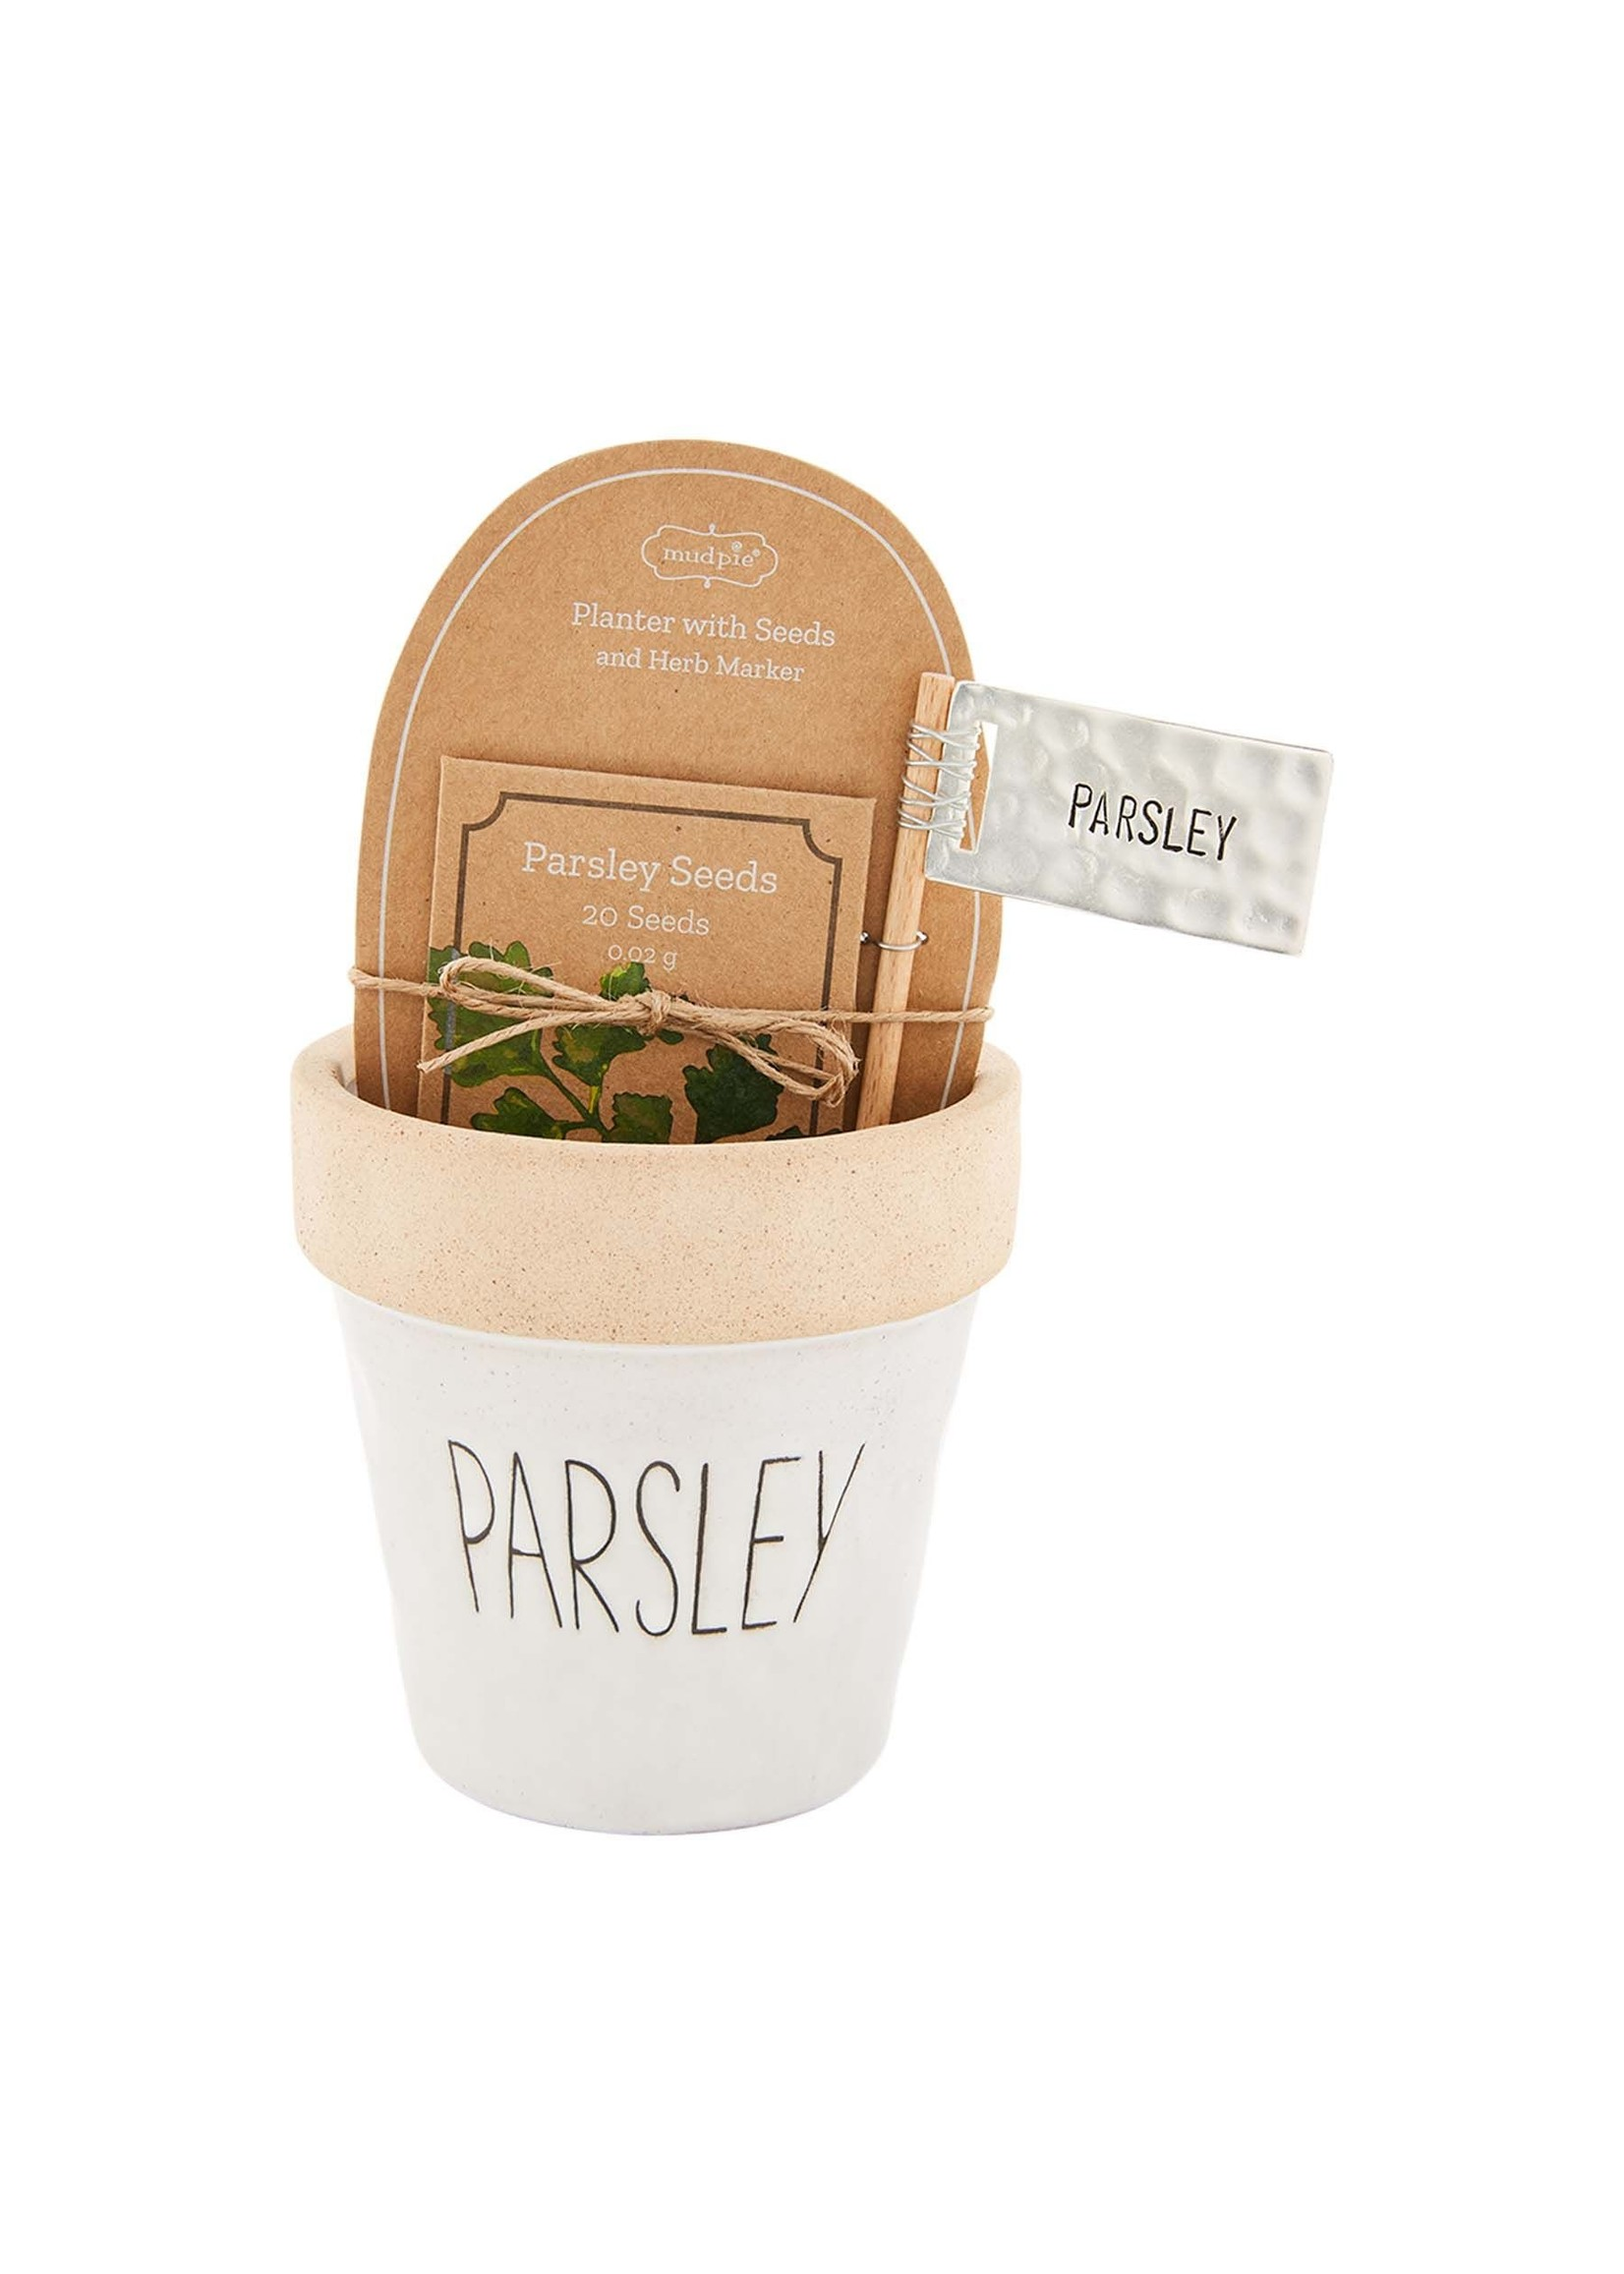 Parsley Seed Pot